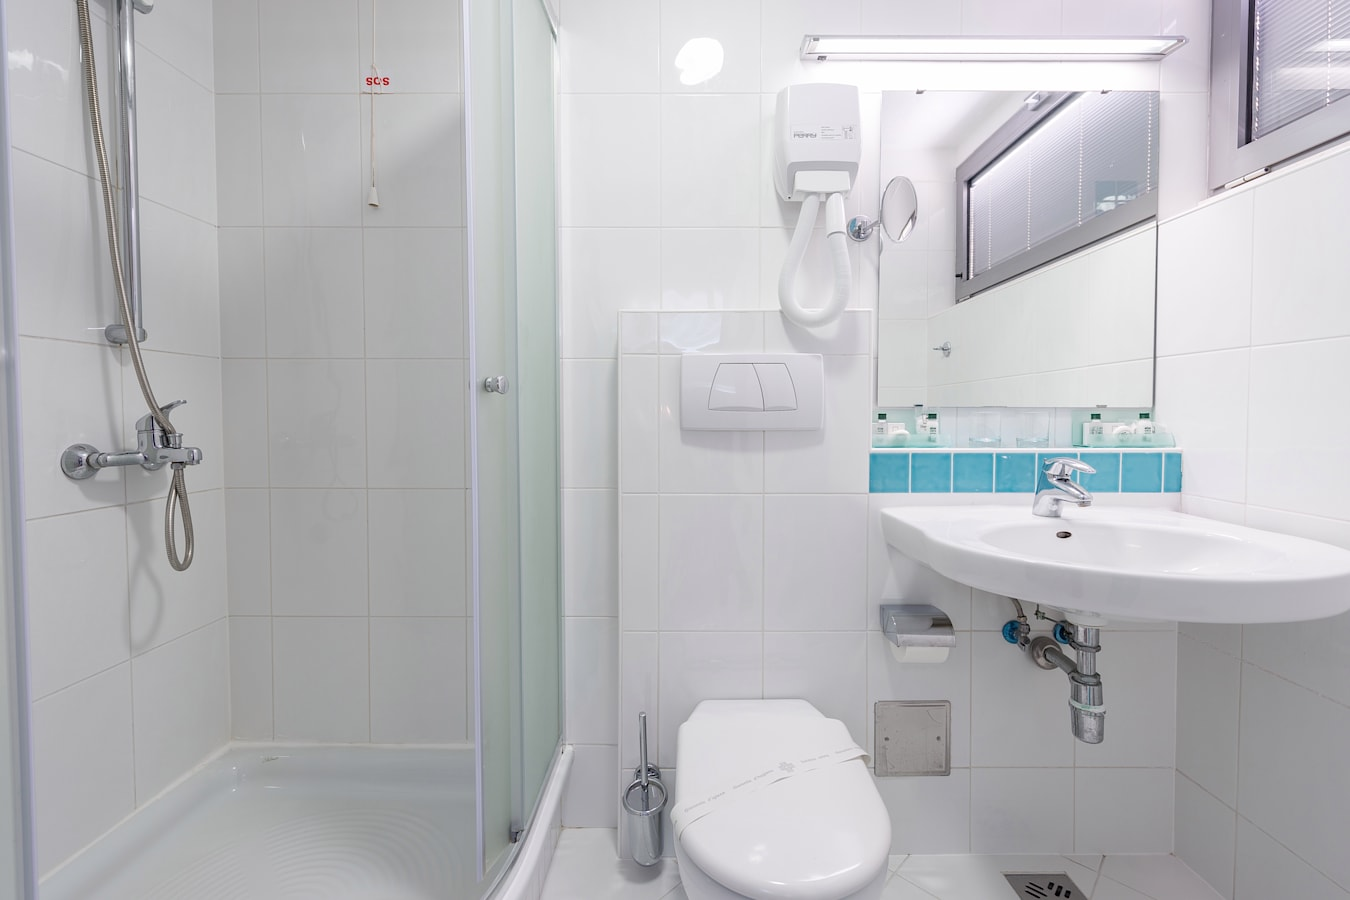 uvlala-hotel-room-bathroom-shower.jpg